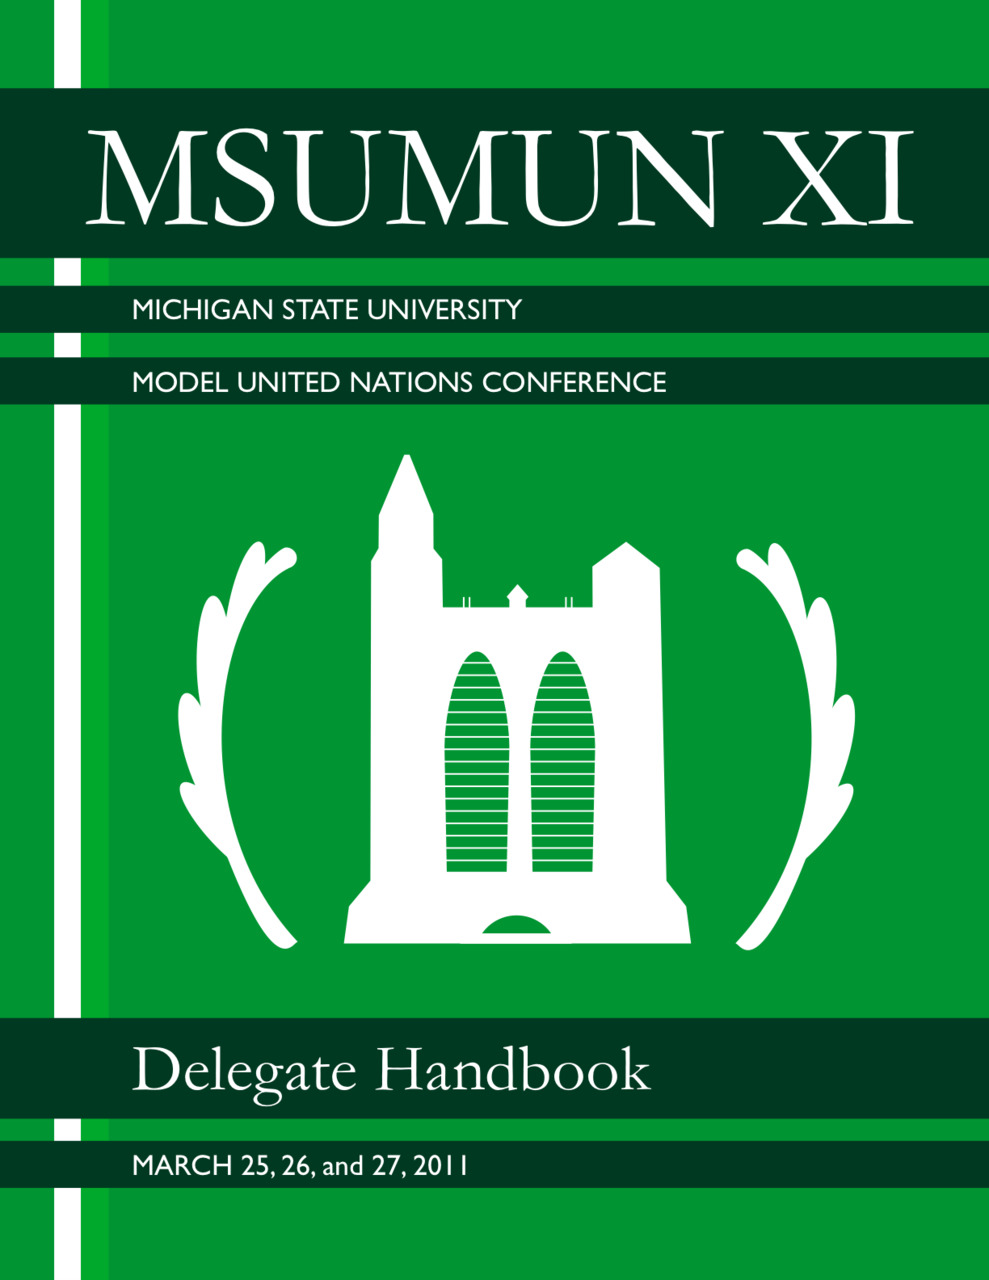 34 page Delegate Handbook I created for the non-profit group MSUMUN XI. They printed out 650 copies.